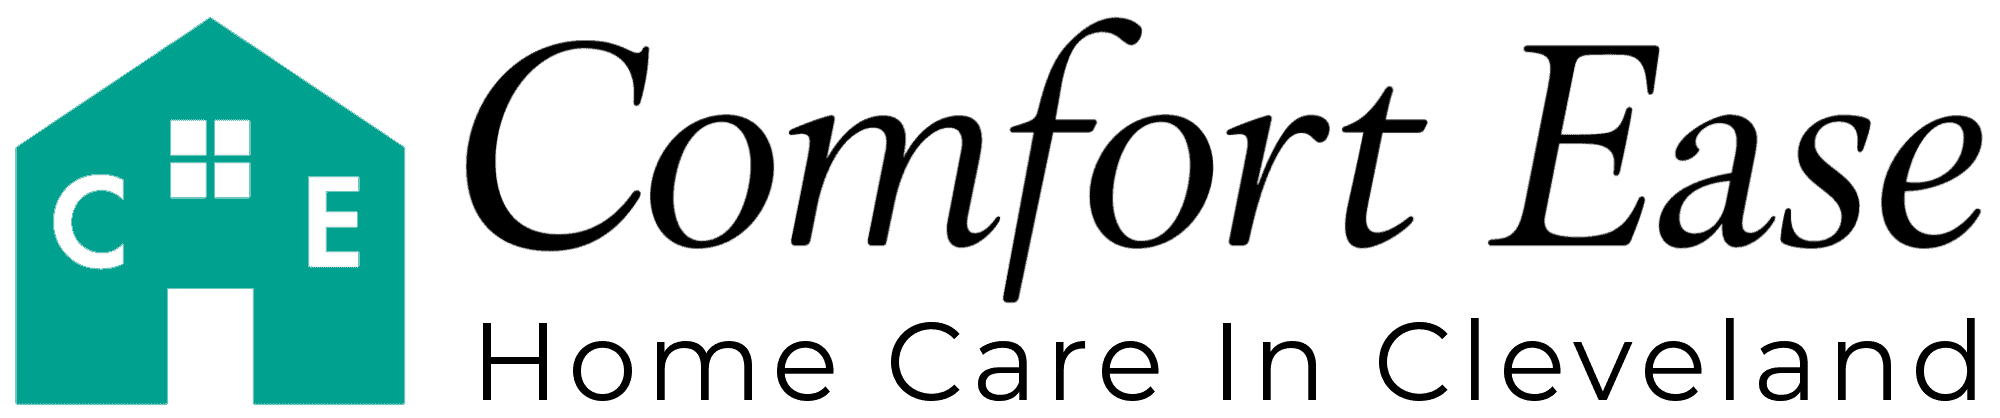 Comfort Ease Home Care In Cleveland Provides Superior Home Care Service in Cleveland 9